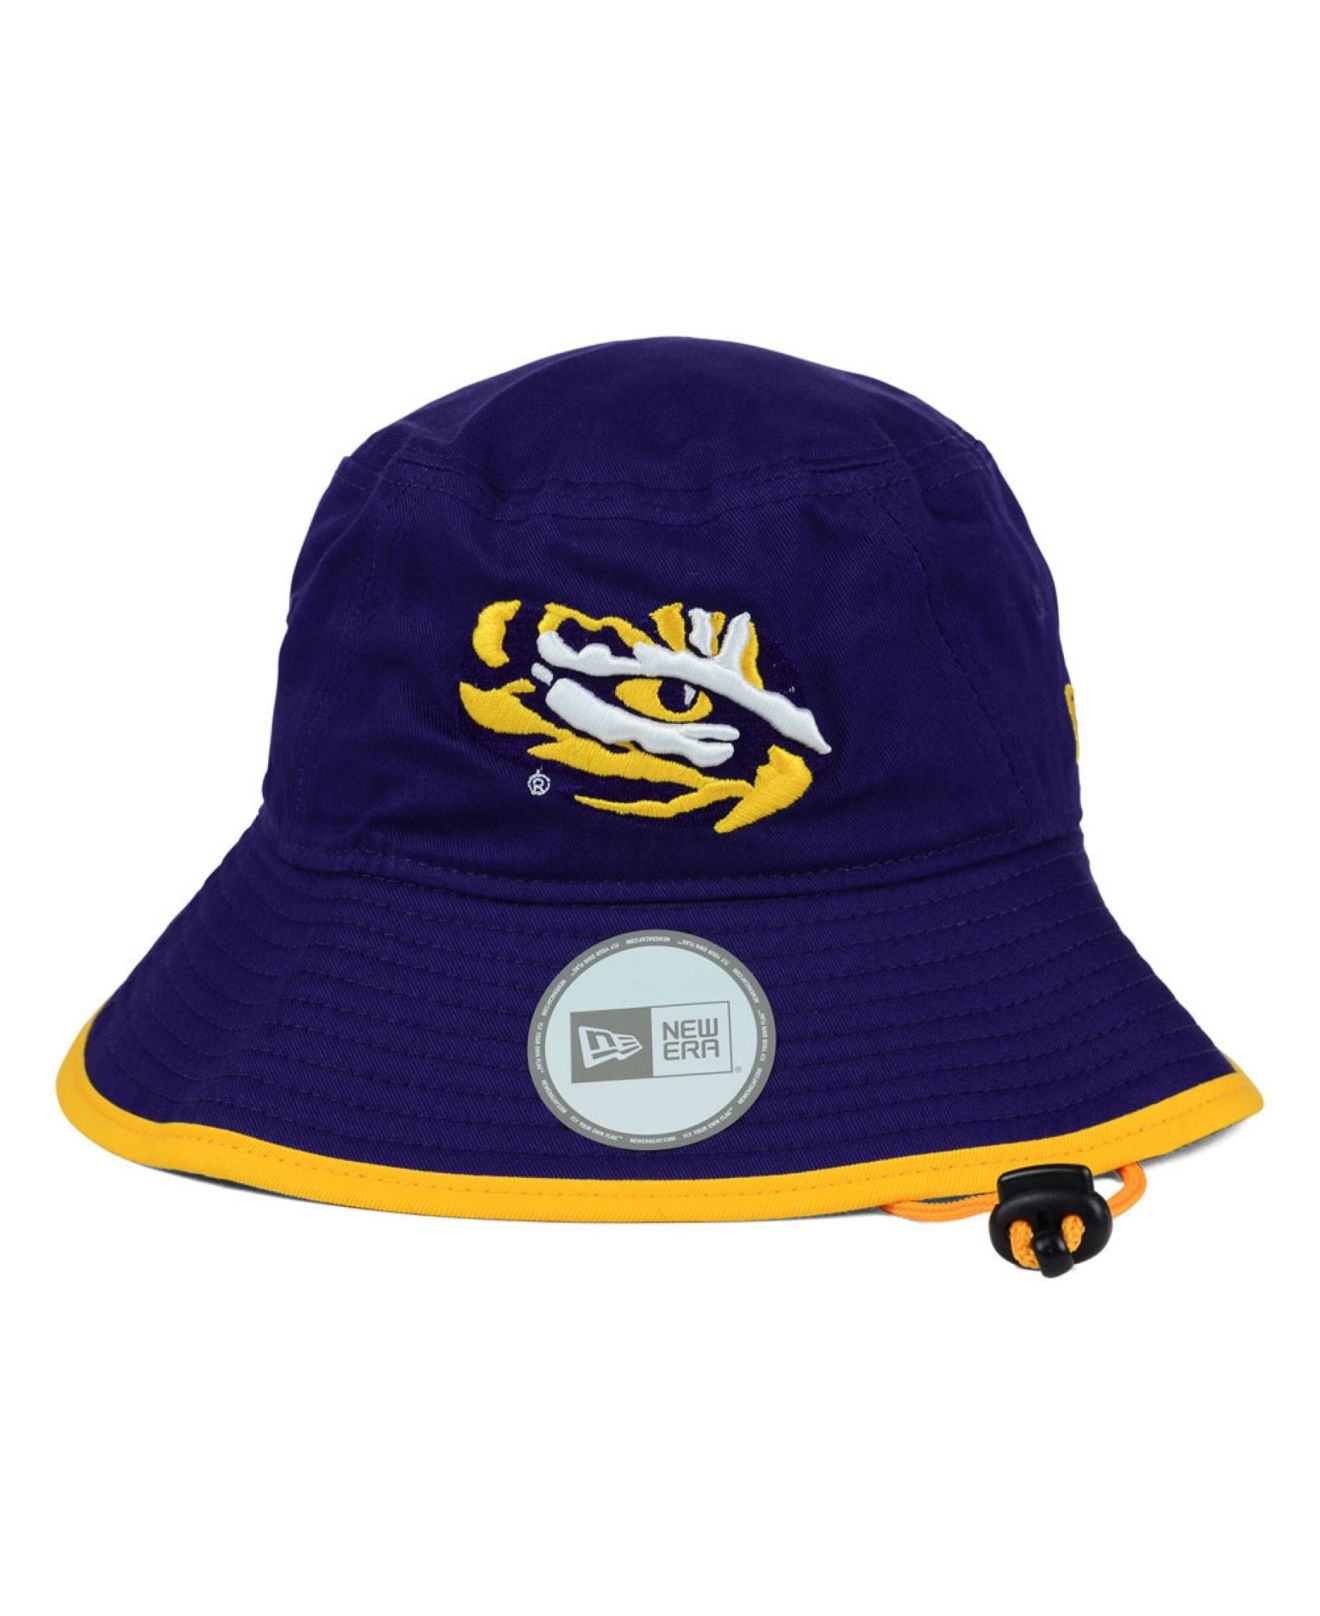 newest 4495c 148ef ... store lyst ktz lsu tigers tip bucket hat in purple for men bc534 a8291